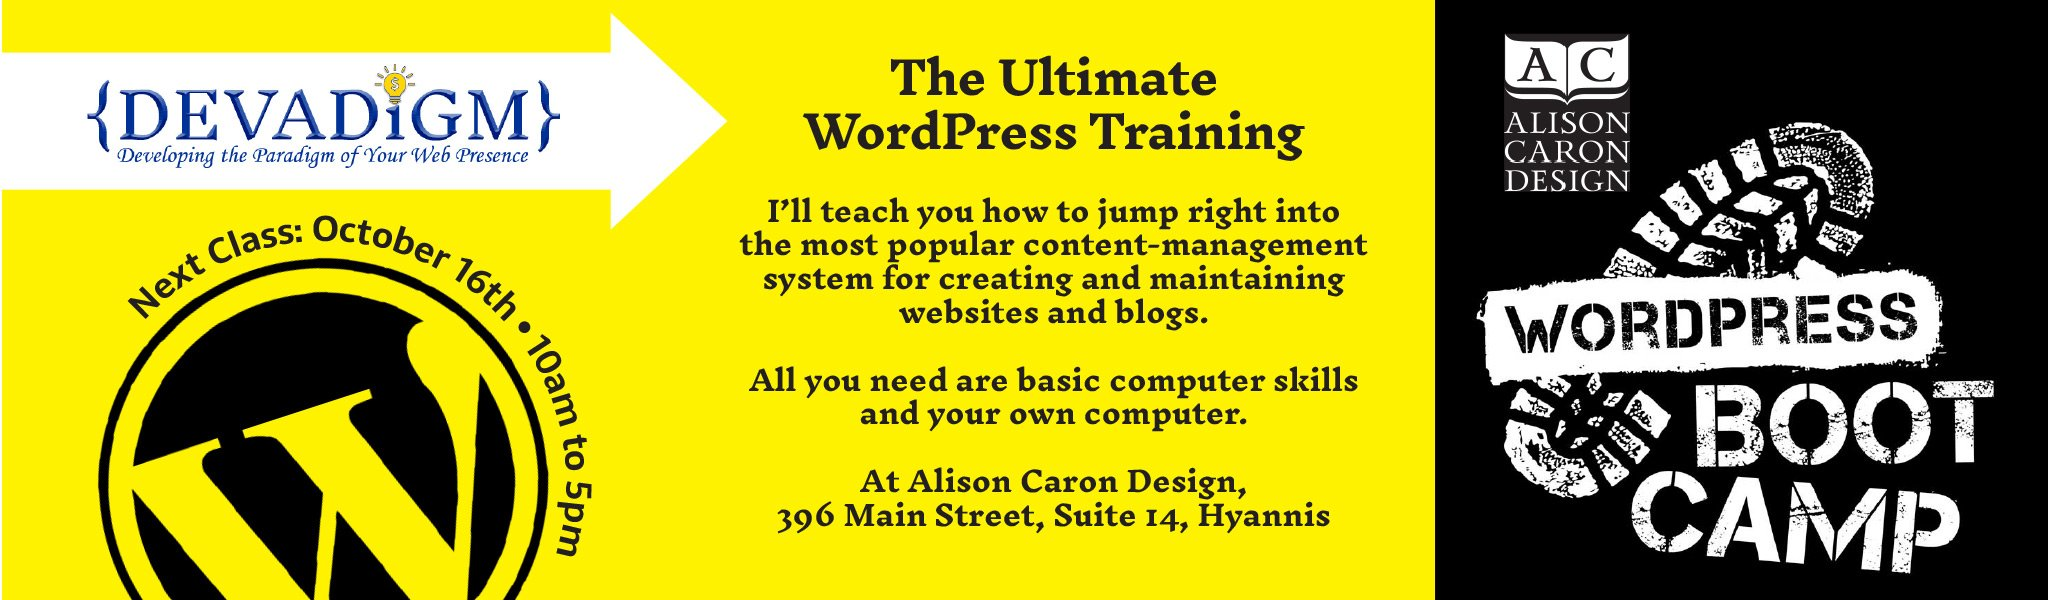 Announcement regarding the ultimate WordPress training on Cape Cod! The next WordPress Boot Camp is scheduled on October 16th, 2021 from 10am until 5pm. Training conducted by Shane Skinner of Devadigm and held at Alison Caron Design Studio in Hyannis, Massachusetts.